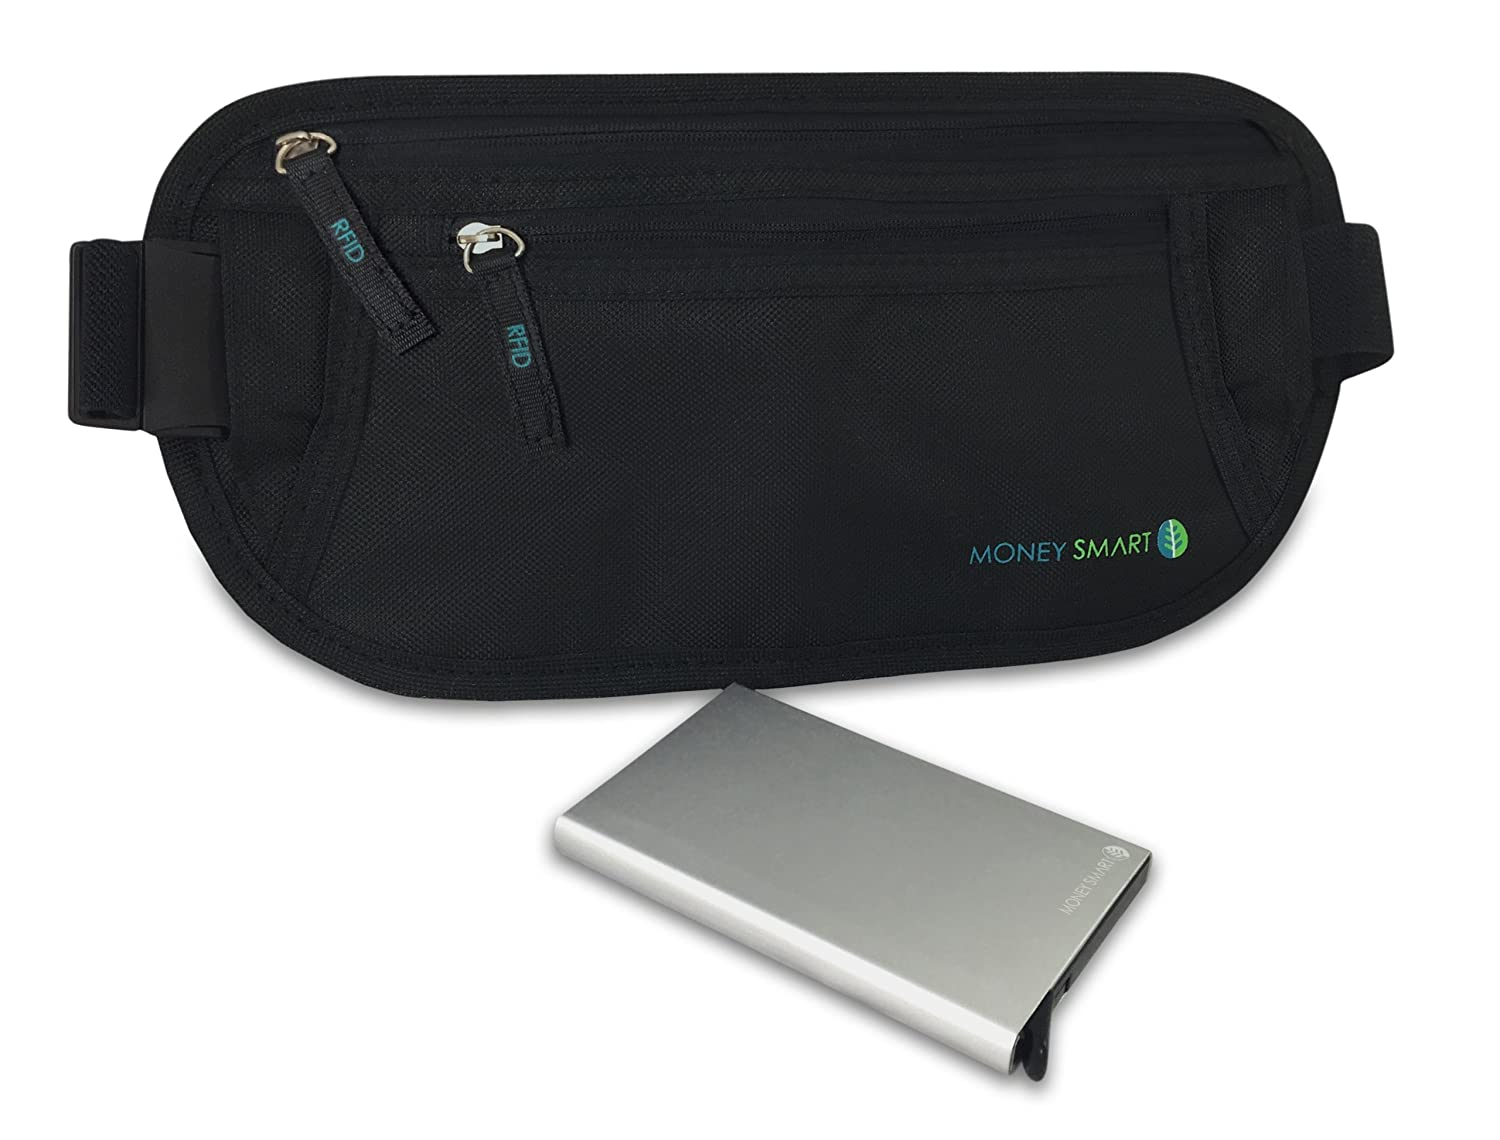 Money Smart Ceinture de Voyage Porte Cartes Ultra-léger Anti RFID, Portefeuille Protection Antivol pour Passeport, Cartes, ID, Pochette Running Belt Poche sous Vêtement Sport et Voyage